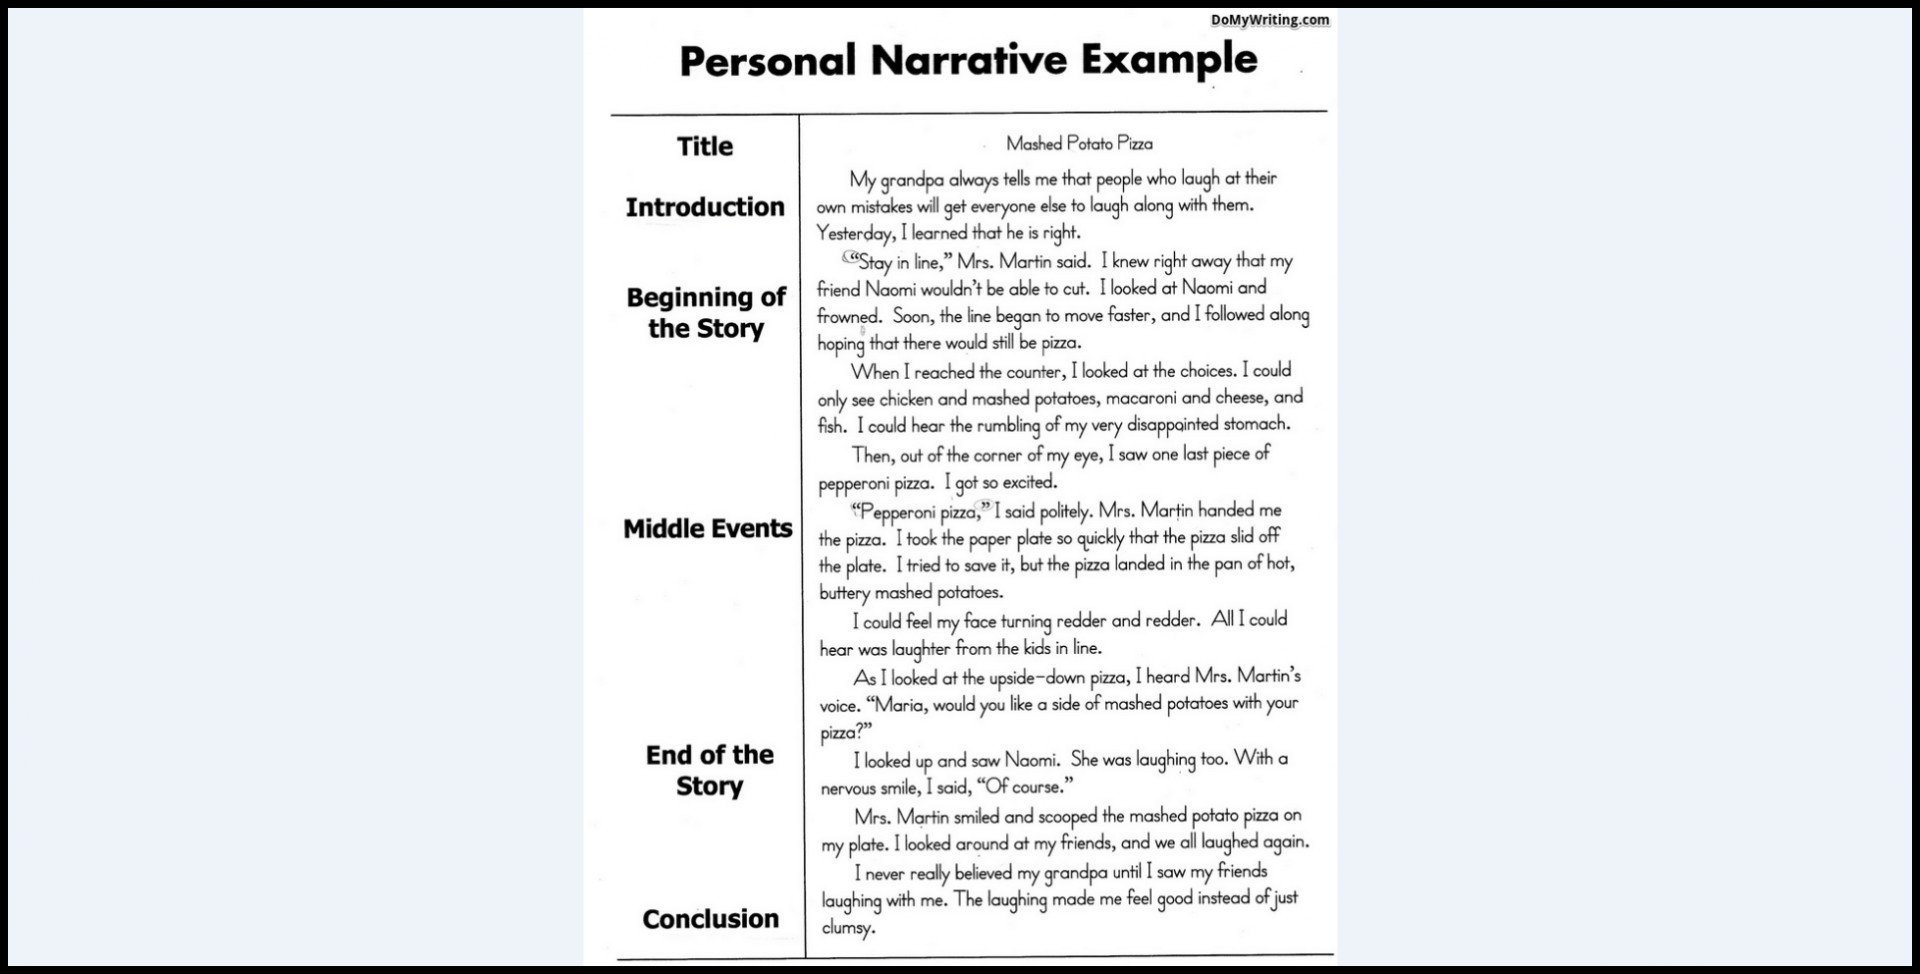 009 Essay Example Narrative Unforgettable Samples Examples High School Format Interesting Spm 1920